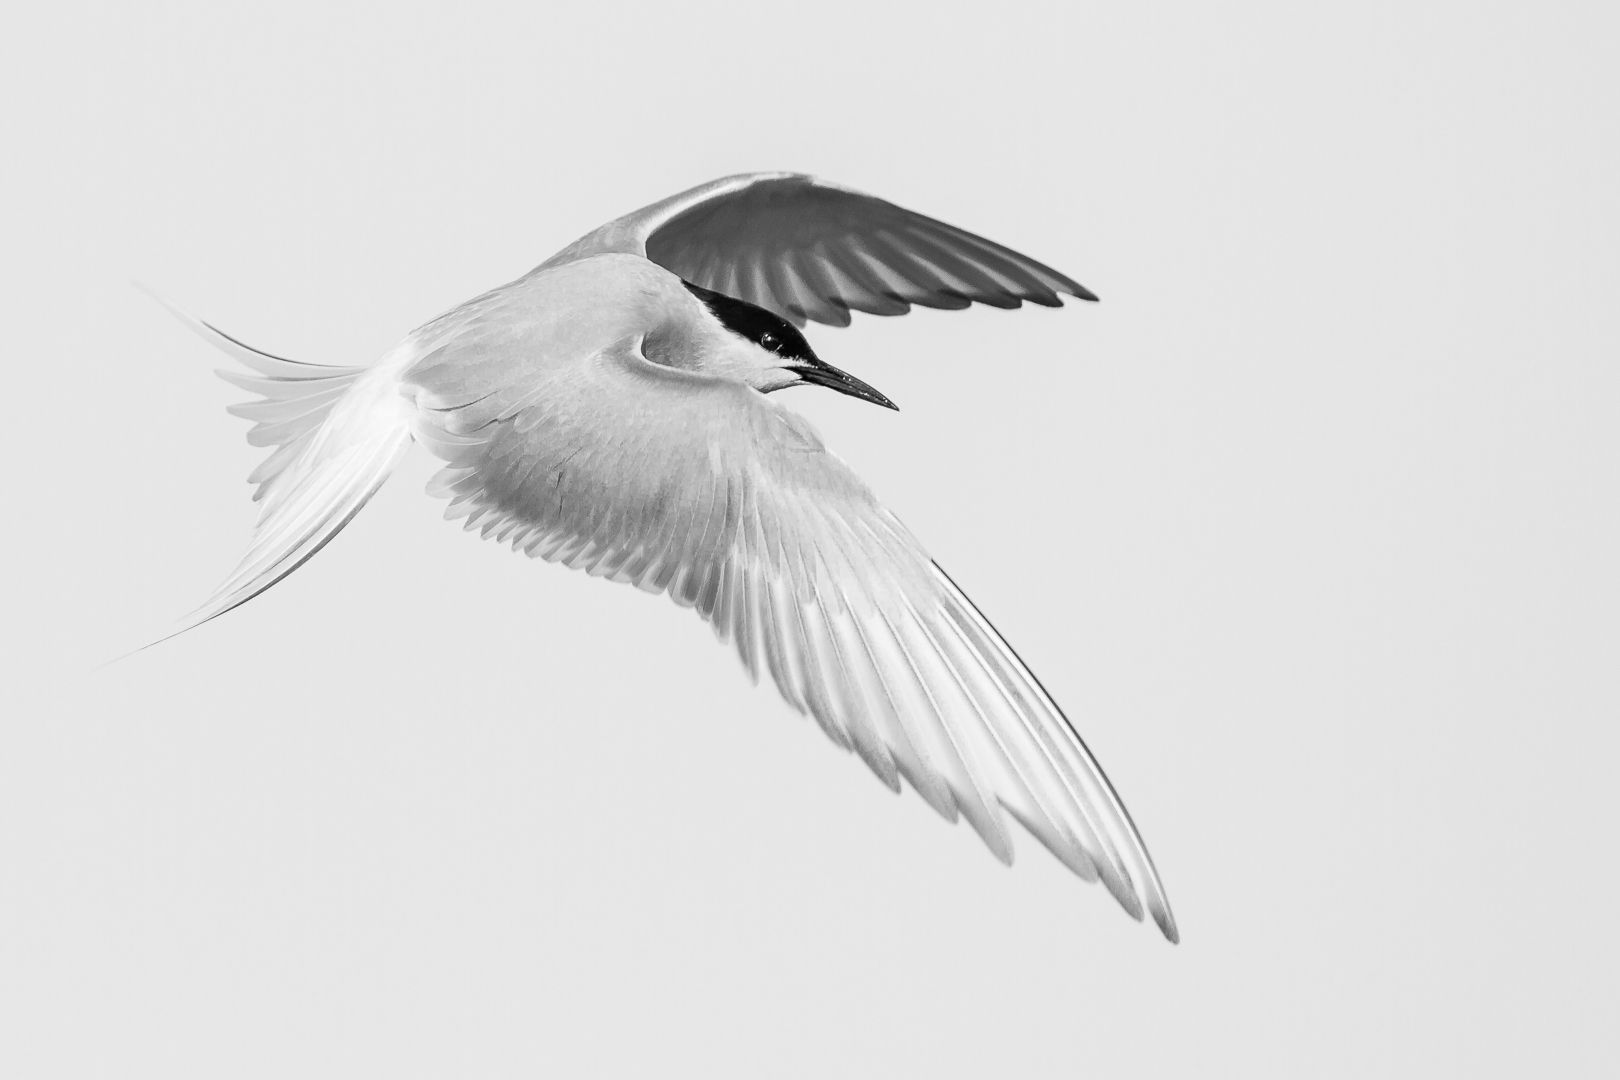 06 Arctic Tern in Flight